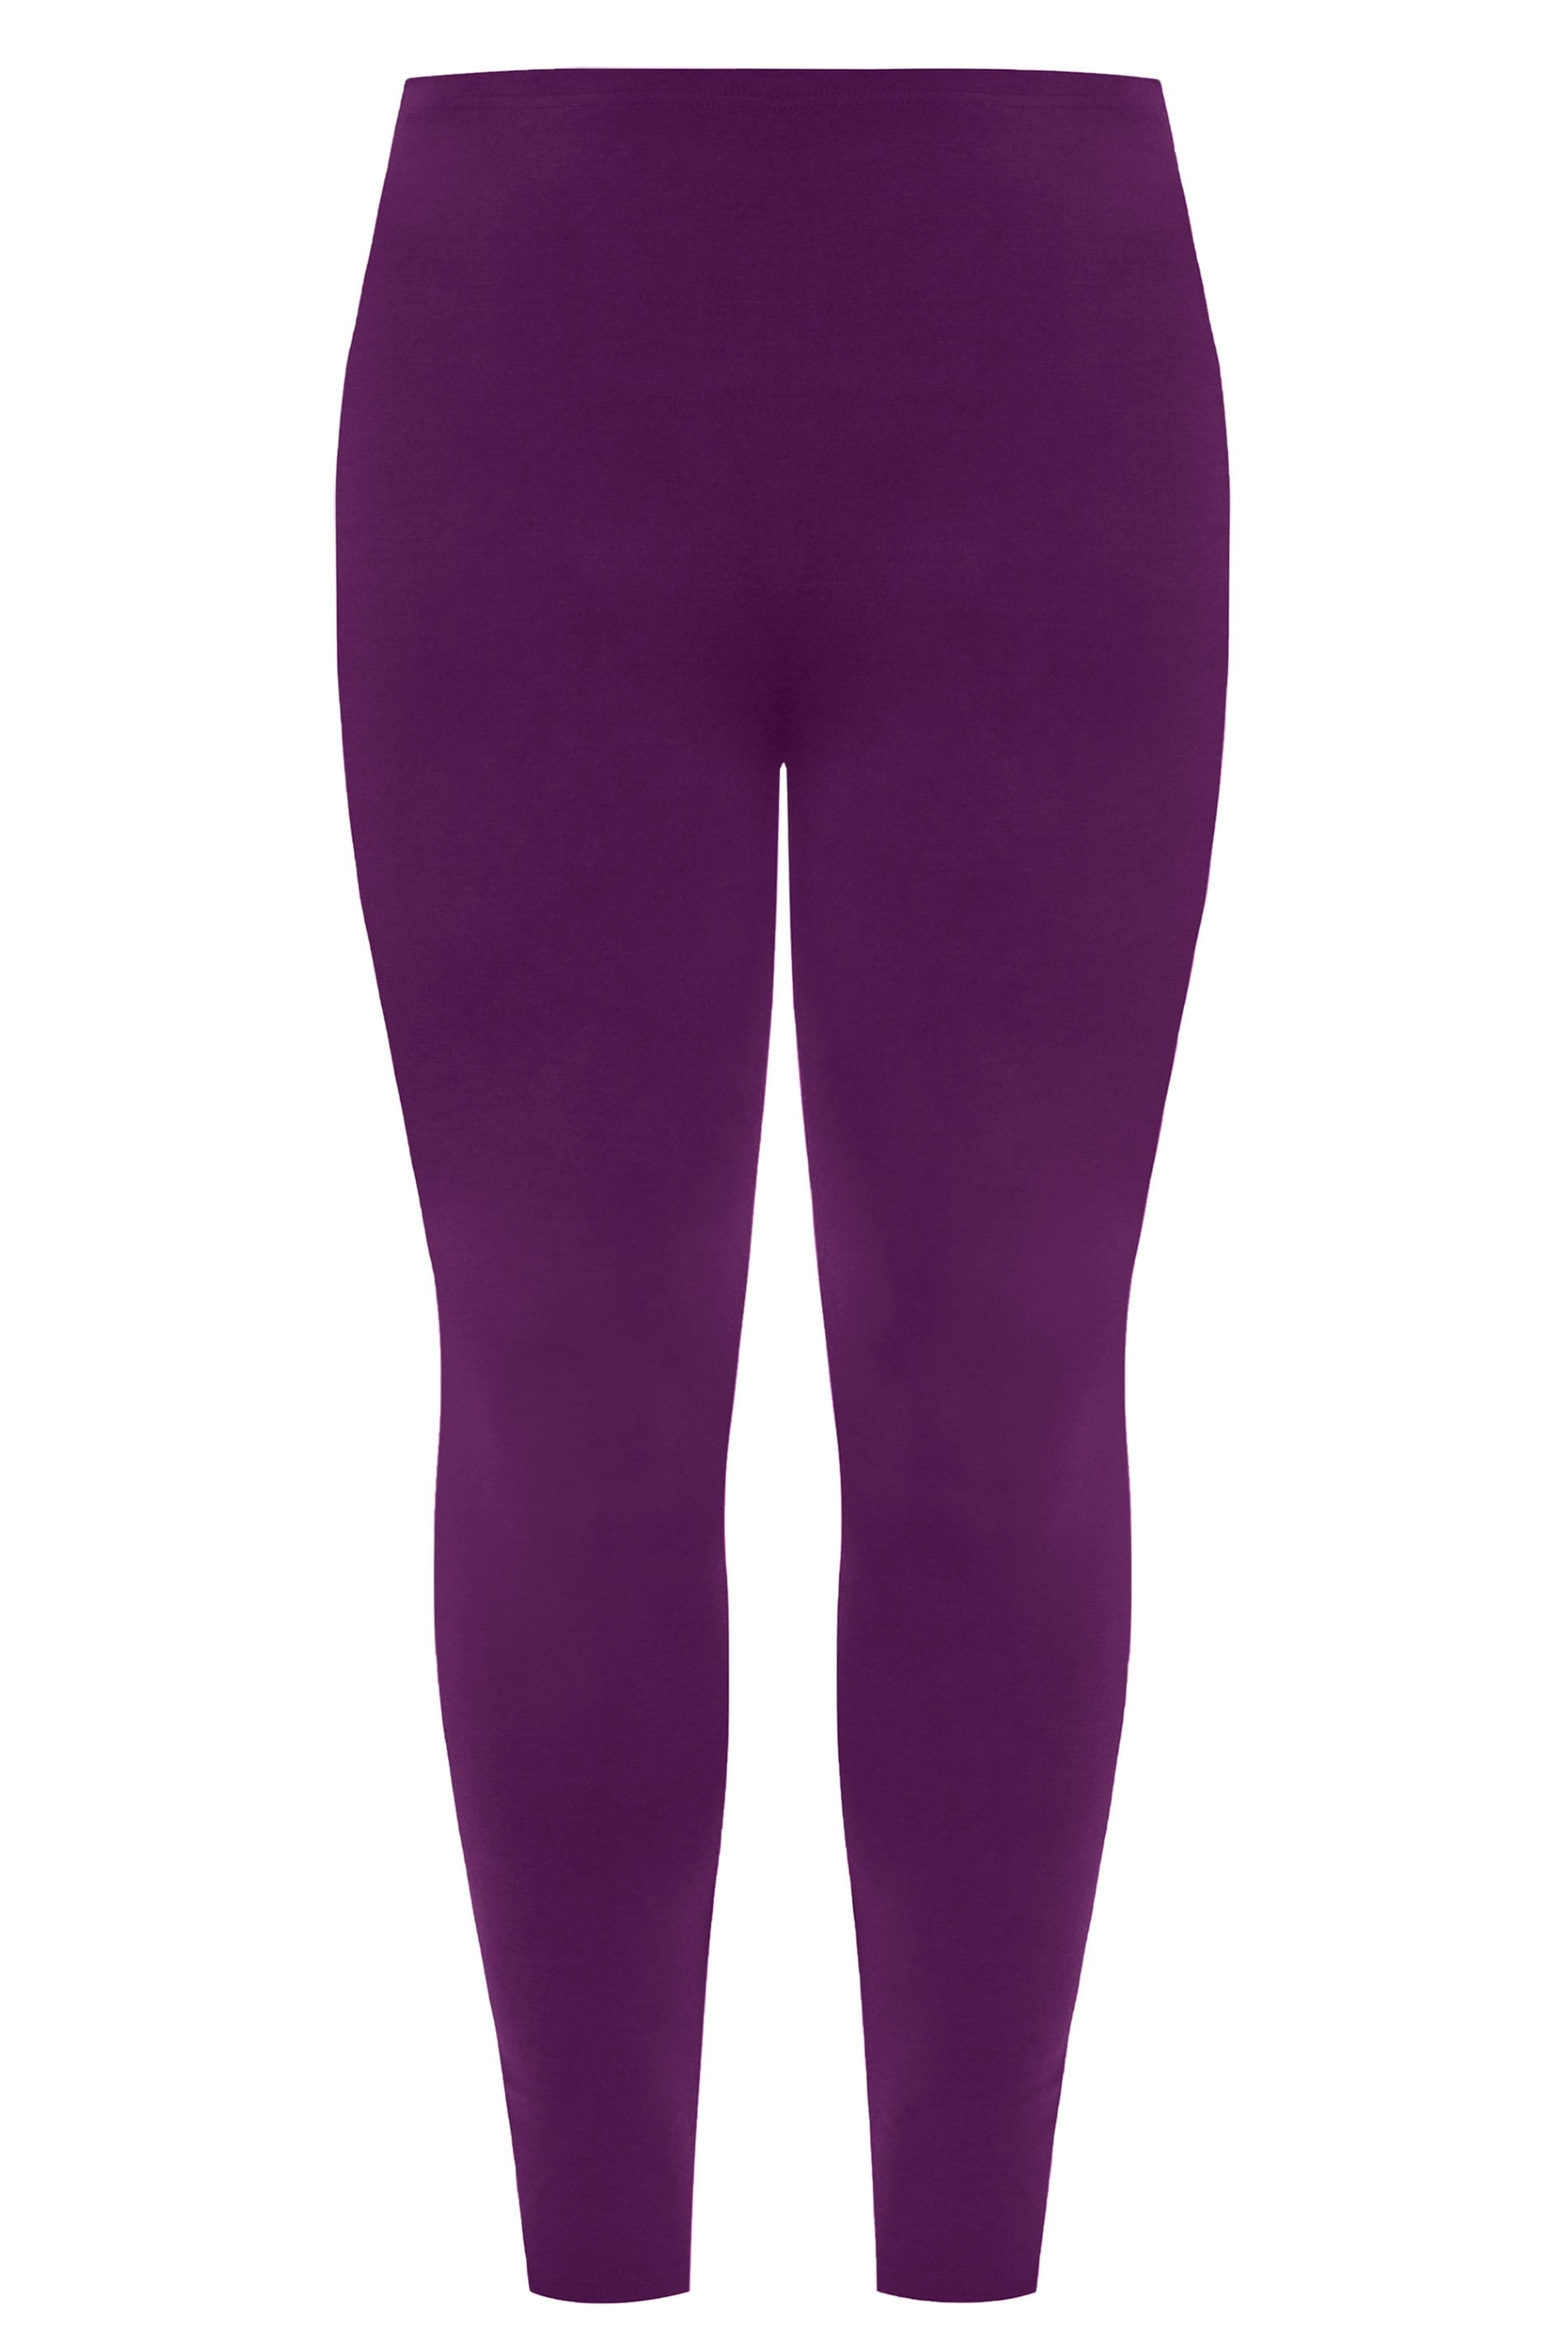 Yours-Clothing-Womens-Plus-Size-Colour-Block-Fashion-Leggings thumbnail 6